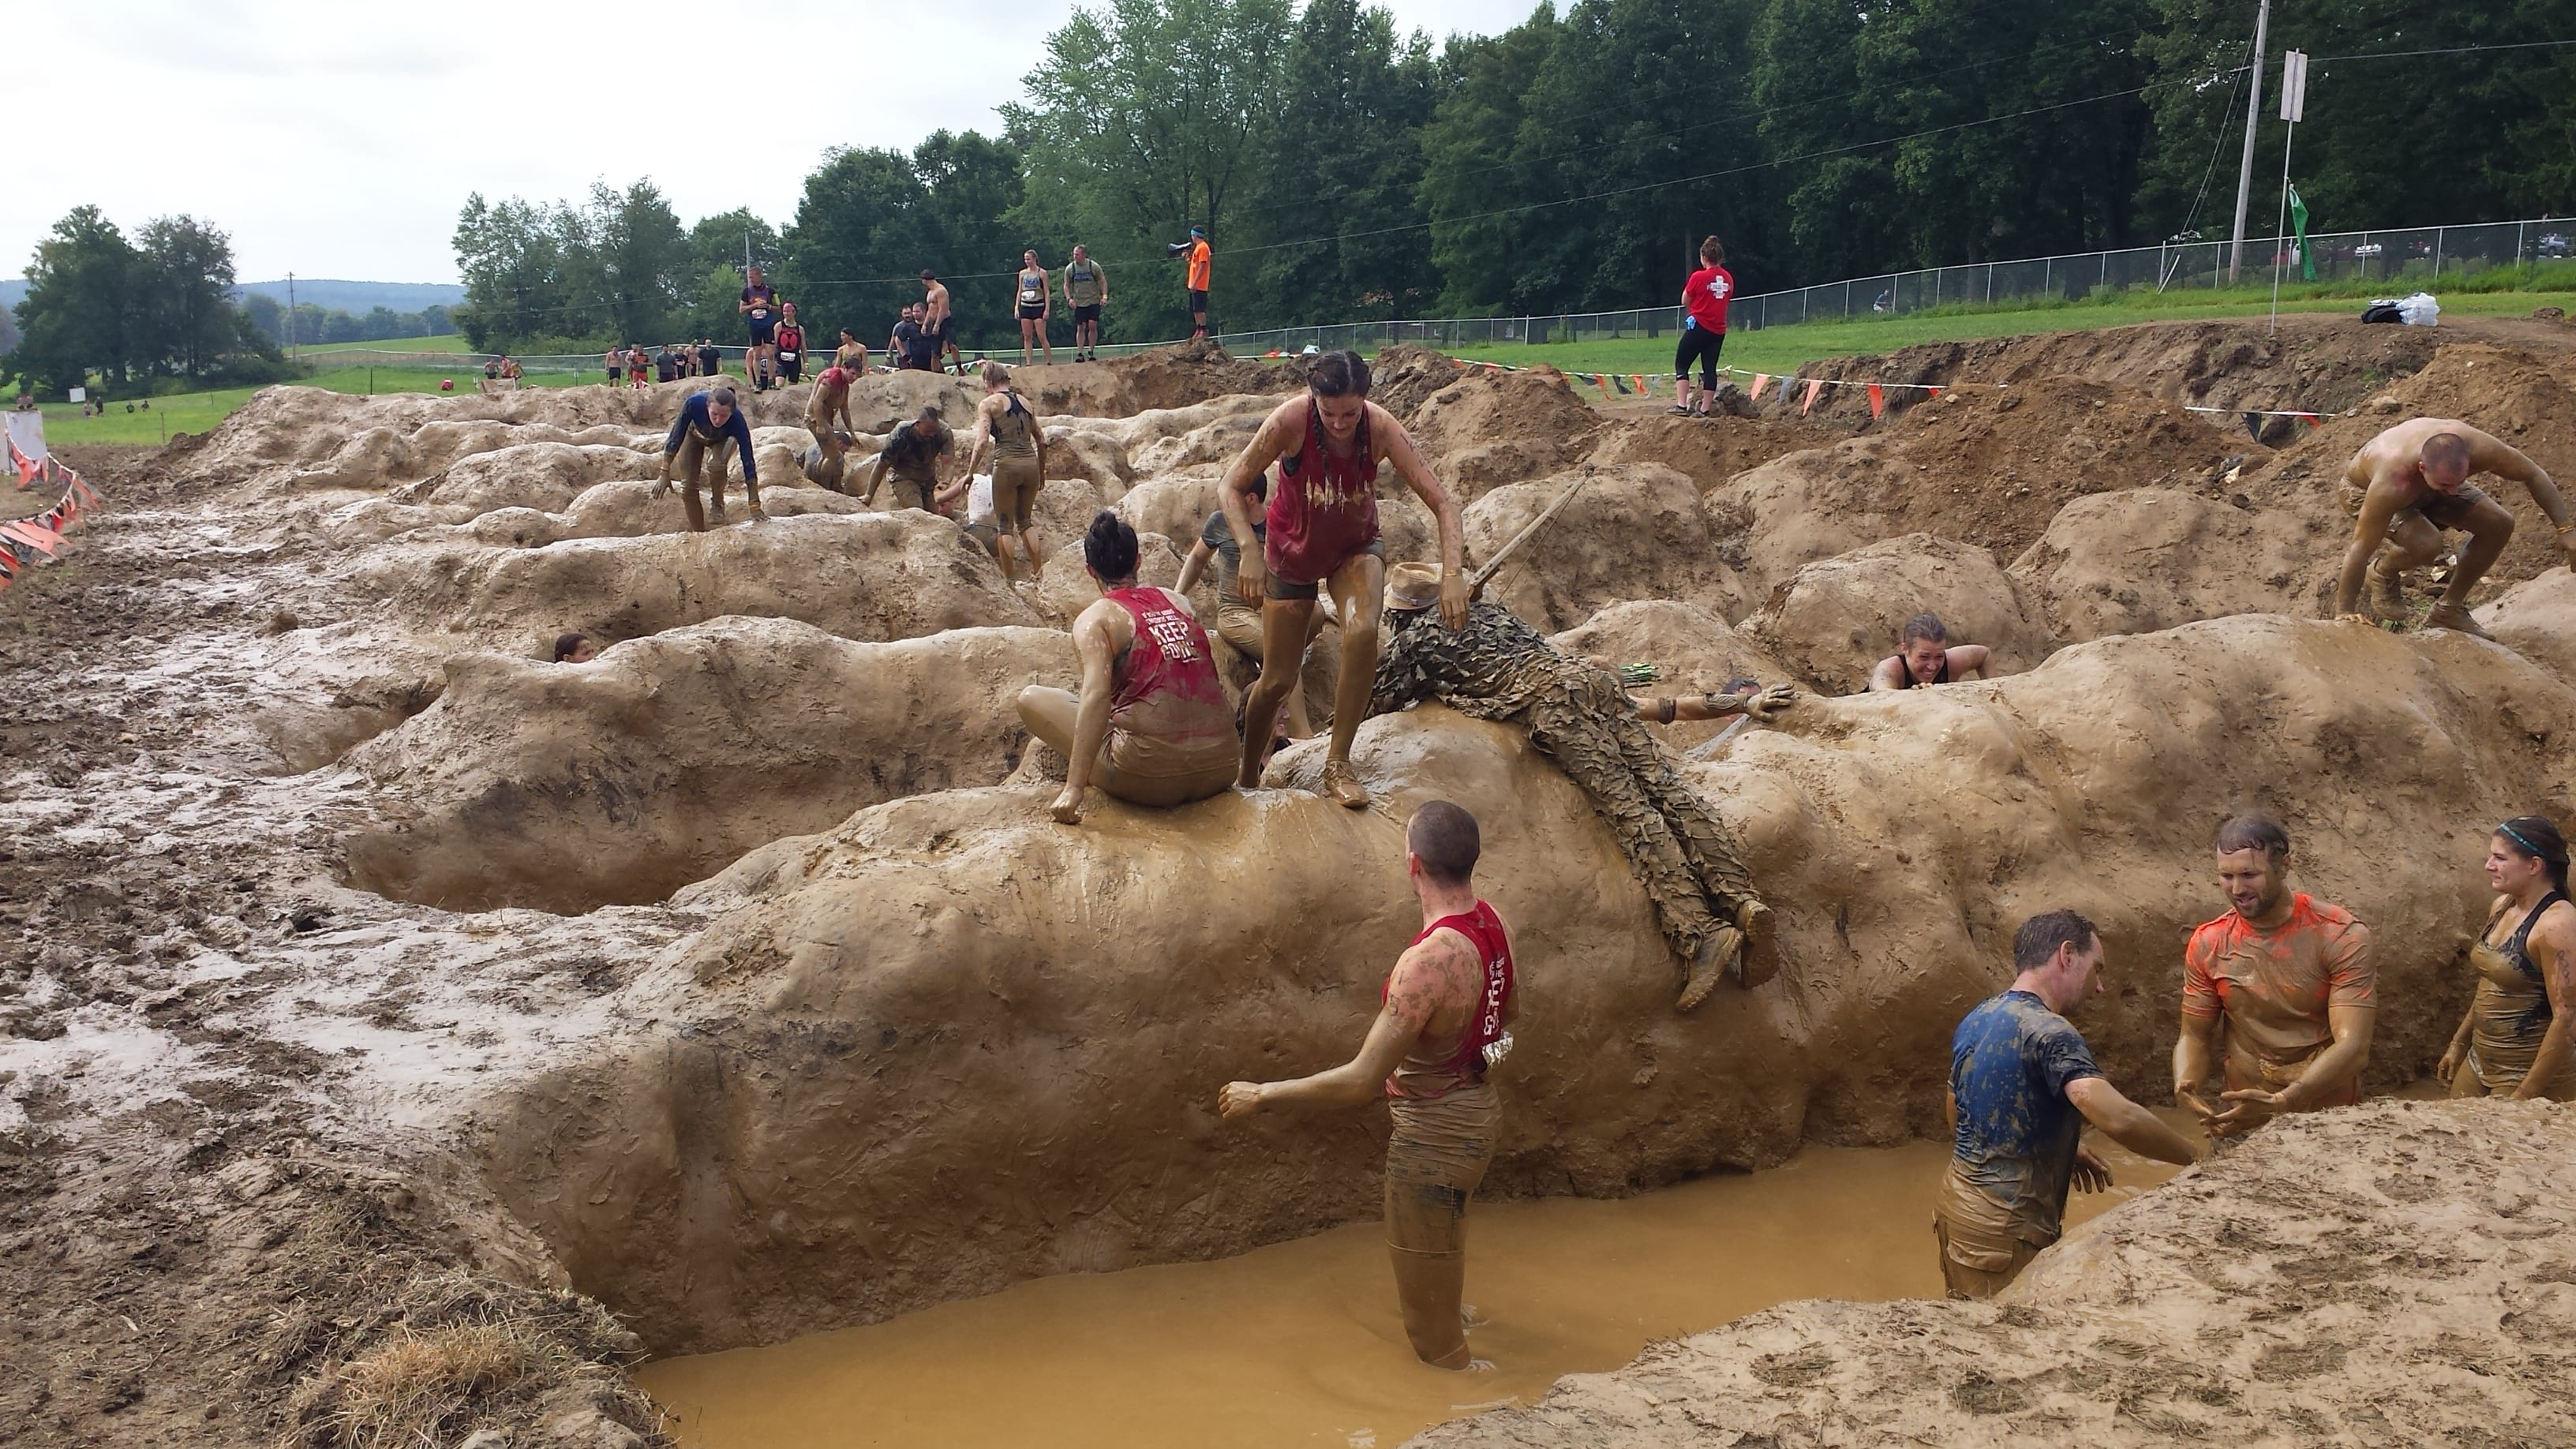 Overview likewise Race Recap Tough Mudder Pittsburgh as well Montana Spartan Race 2015 The Beast further Highlife likewise Atletas Destacados En Los Juegos Olimpicos De Londres 2012 336795. on spartan race in california